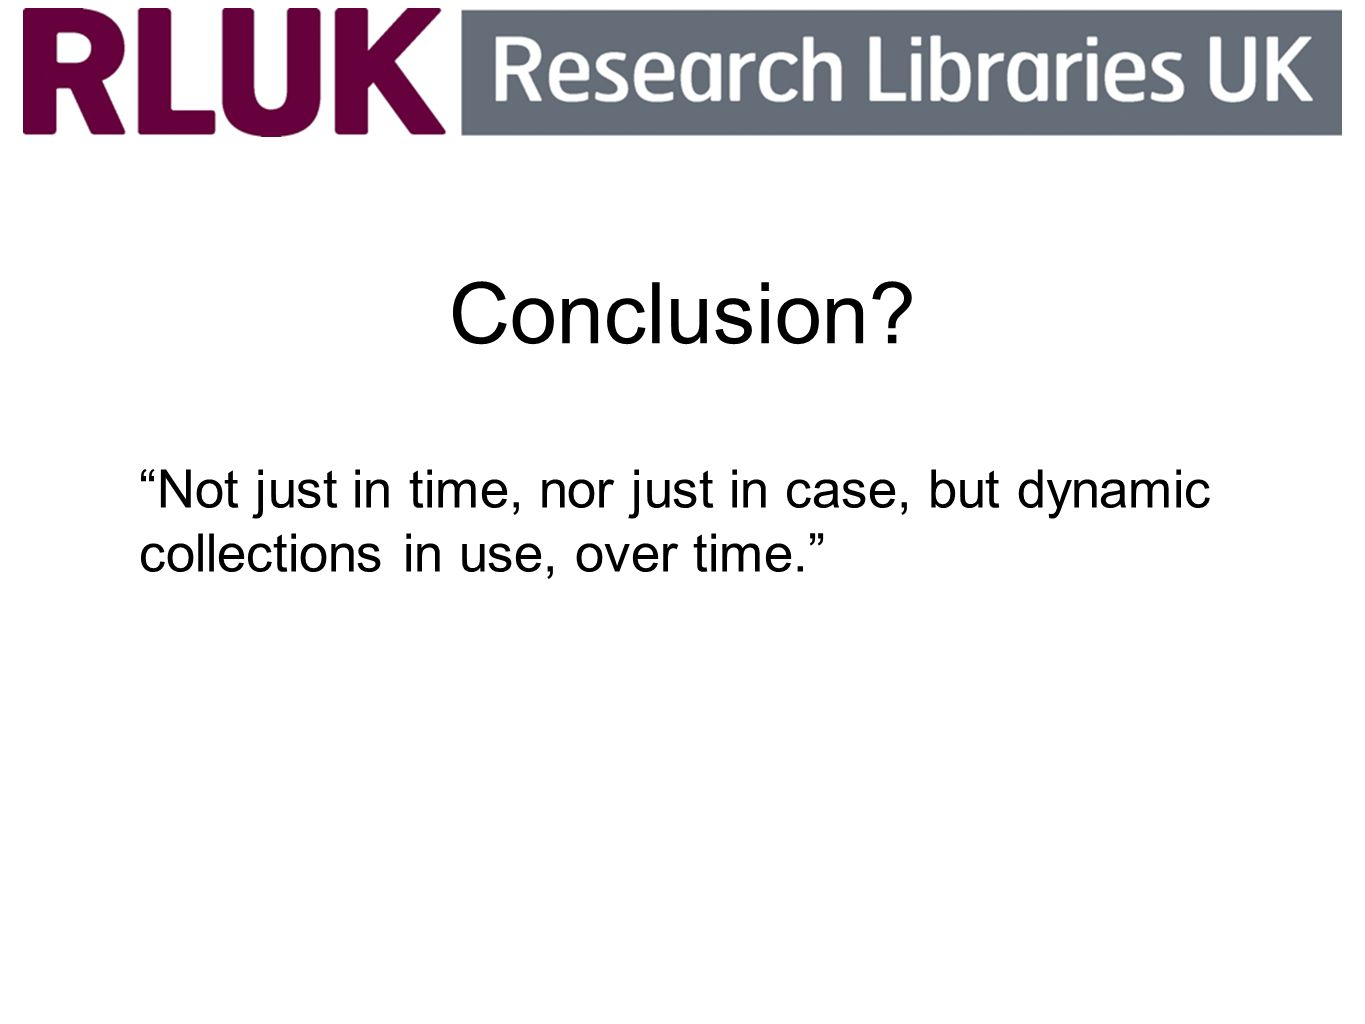 Conclusion? Not just in time, nor just in case, but dynamic collections in use, over time.